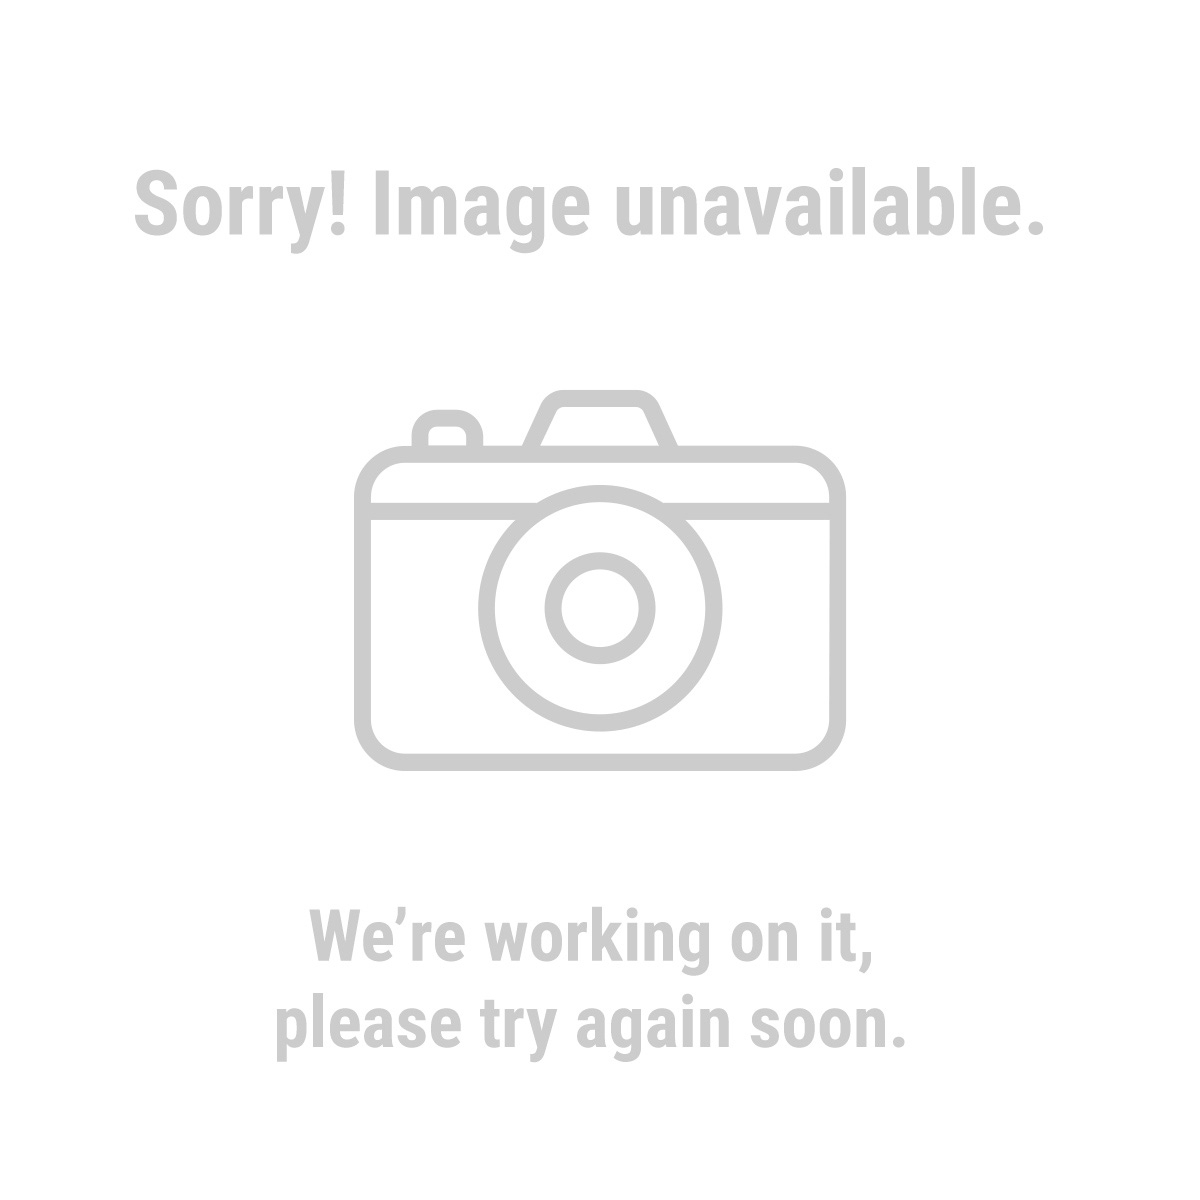 HFT 30872 7 ft. 4'' x 9 ft. 6'' Reflective Heavy Duty Silver Tarp